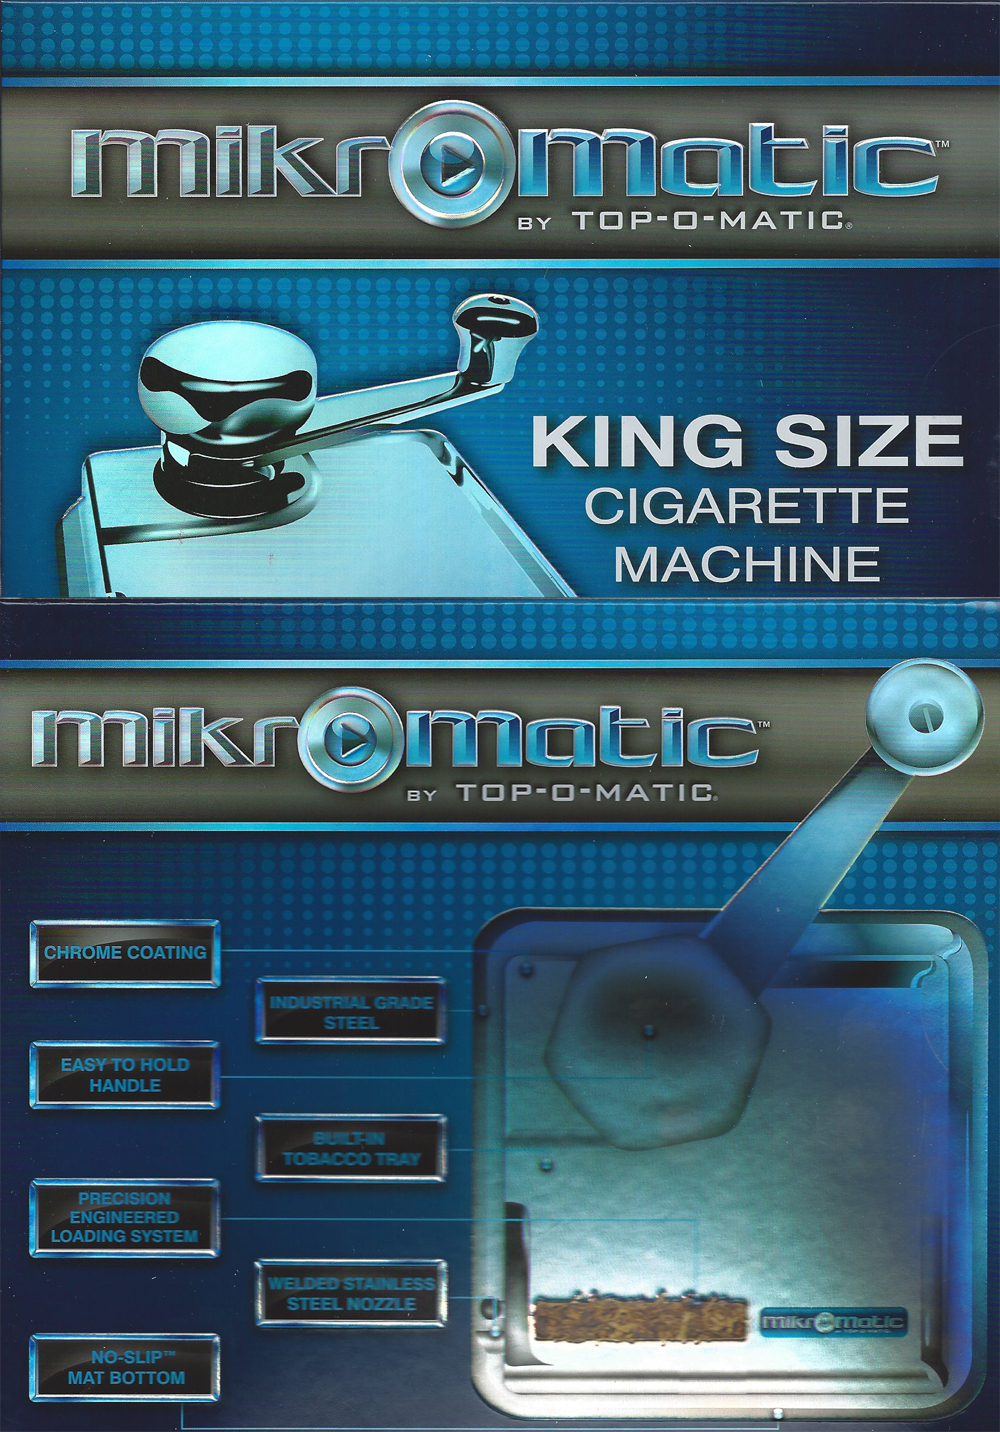 Mikromatic Cigarette Making Machine Its Tobacco